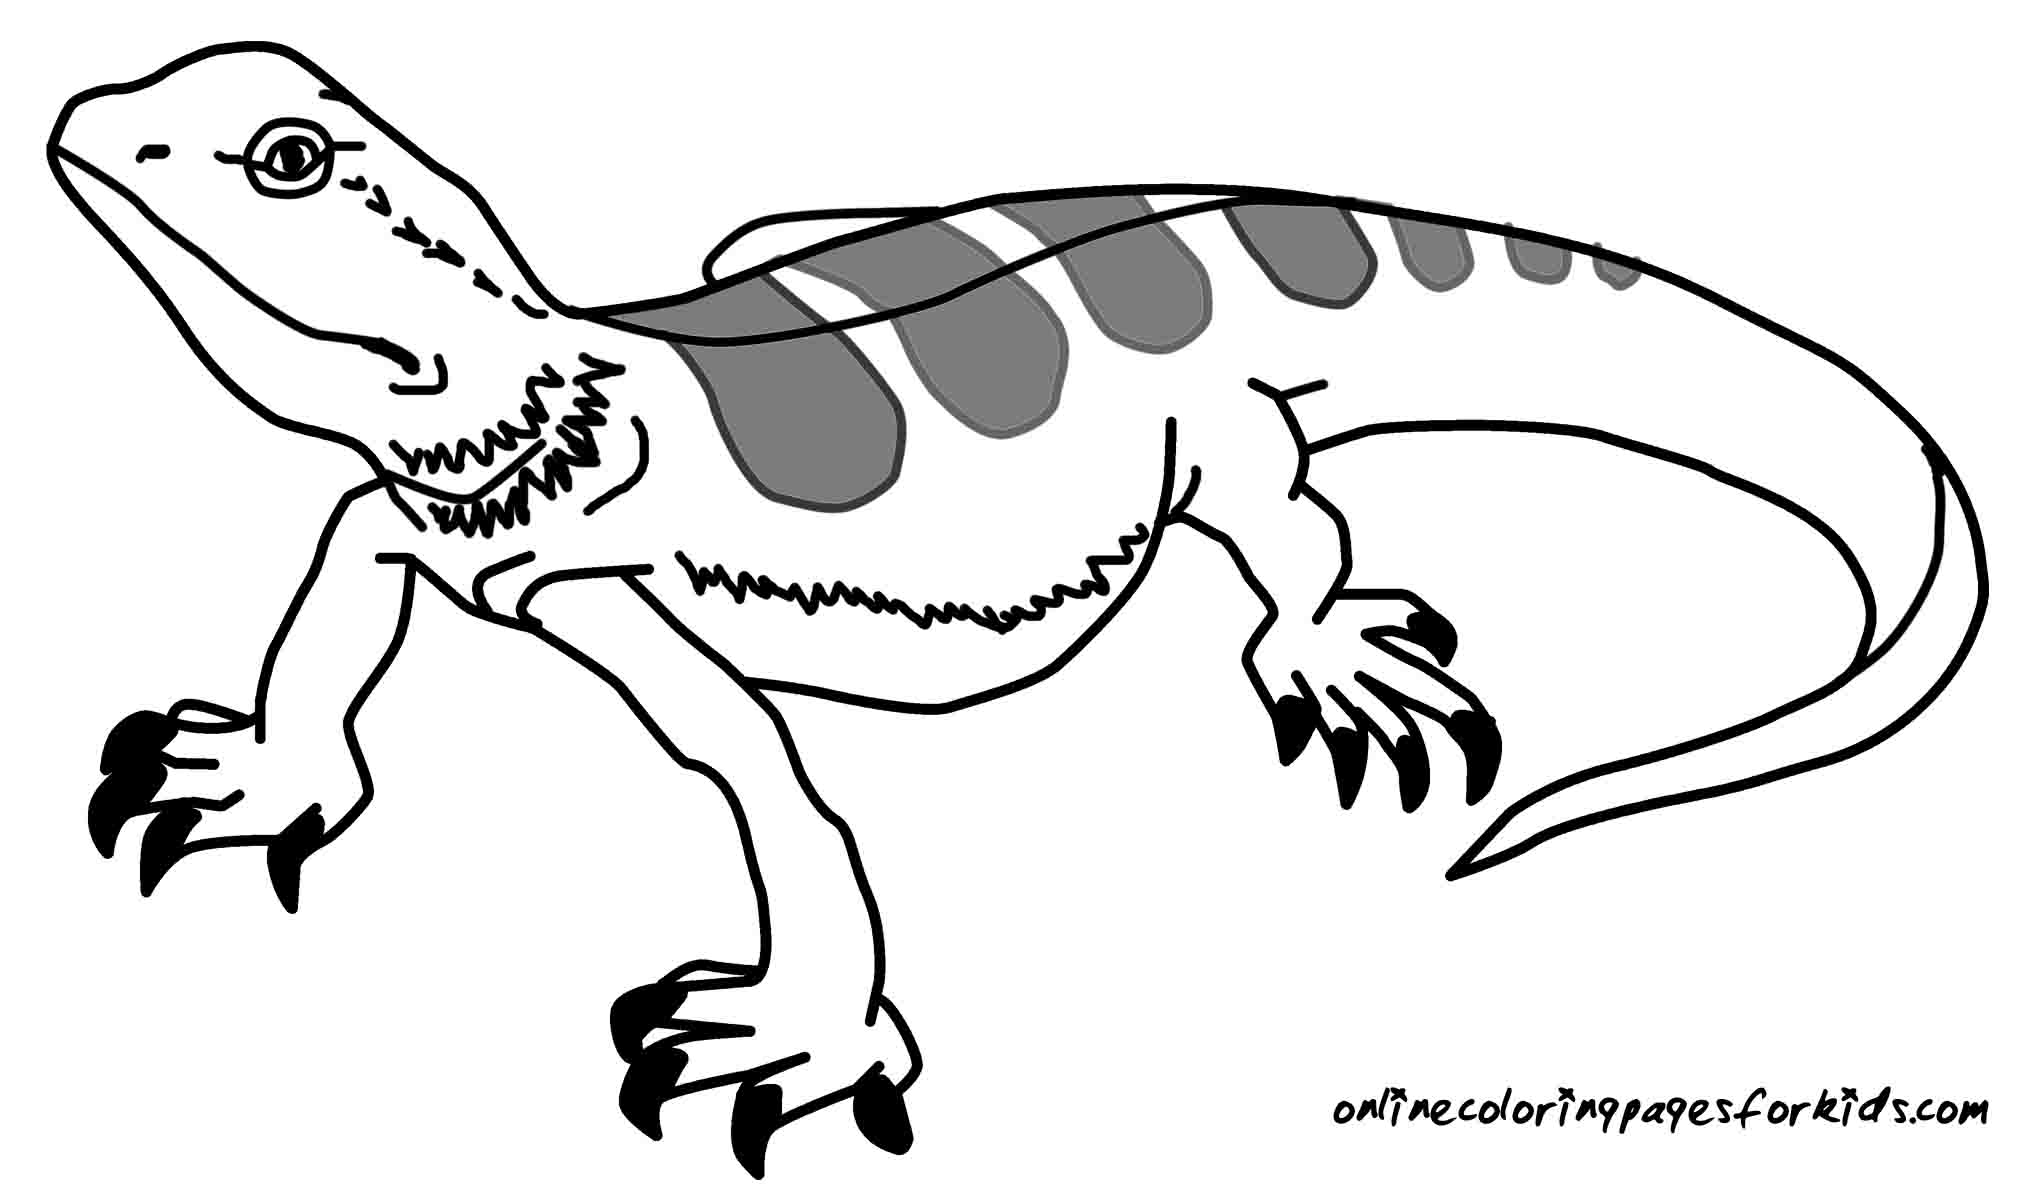 Reptile coloring pages to download and print for free for Lizard coloring pages